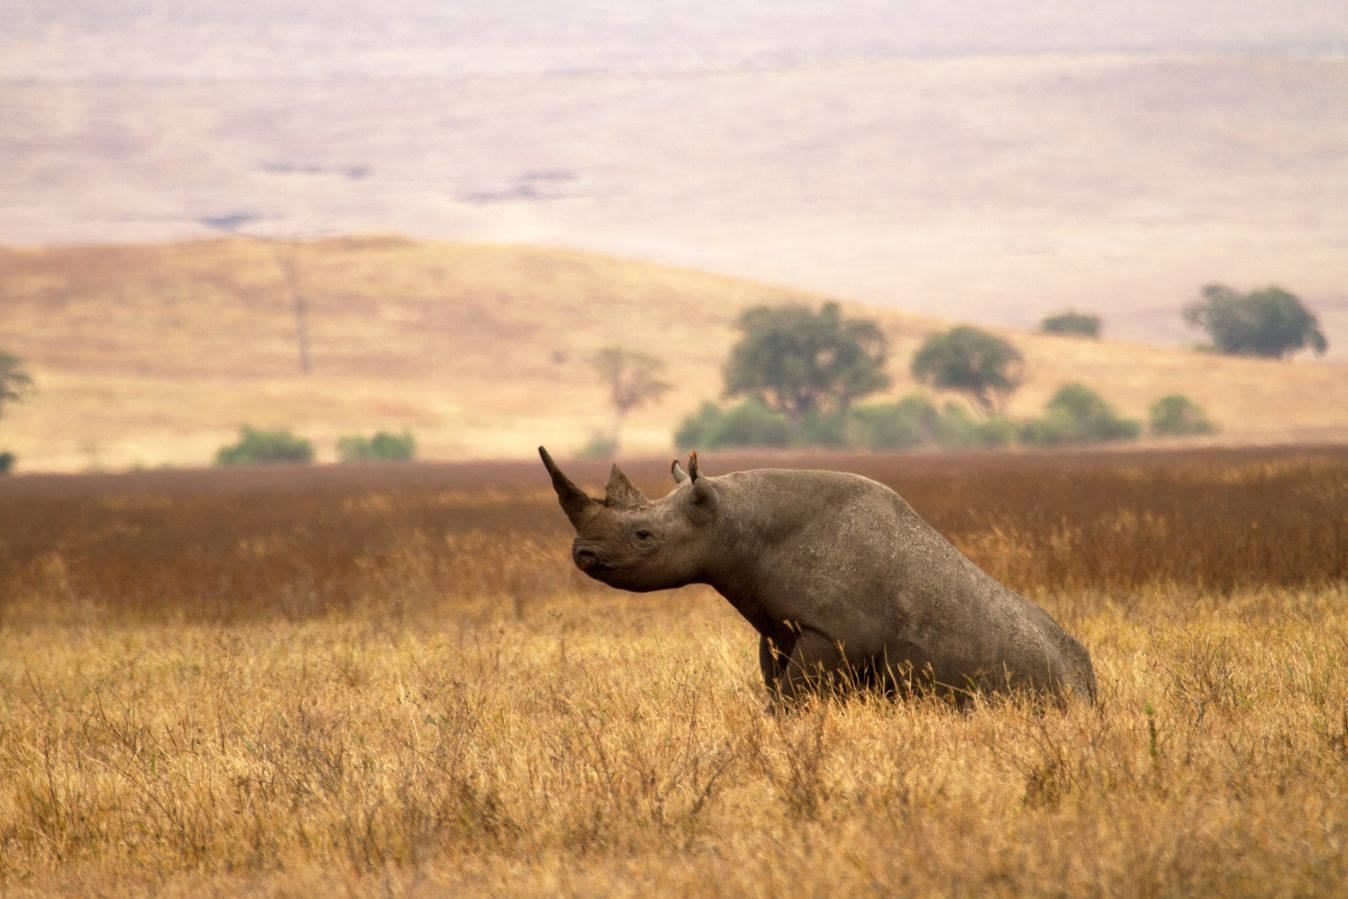 A rhinoceros in the Ngorongoro Conservation Area in northern Tanzania